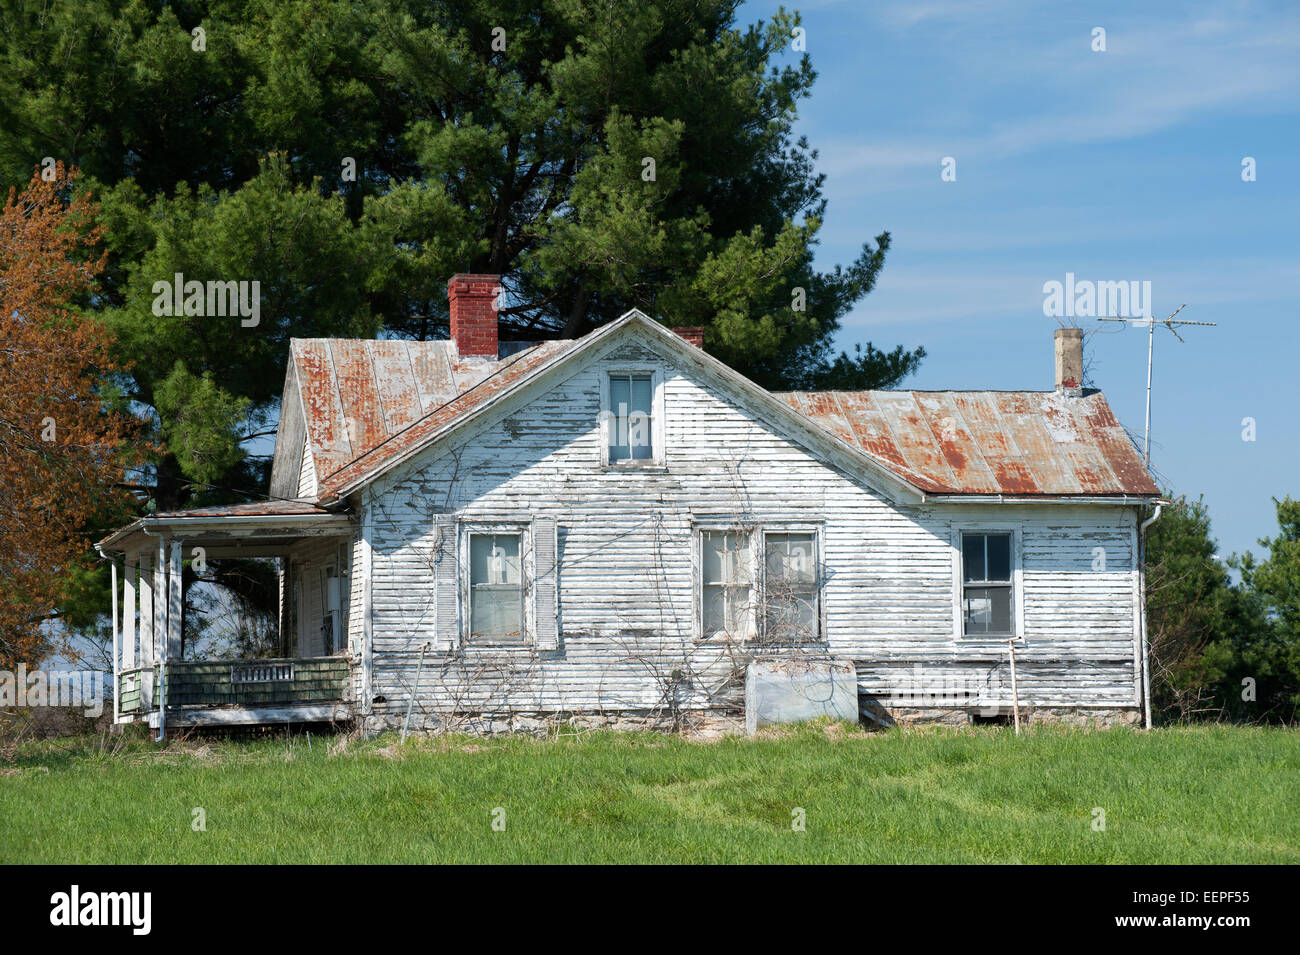 Abandoned house, Shenandoah Valley, Virginia, USA. - Stock Image